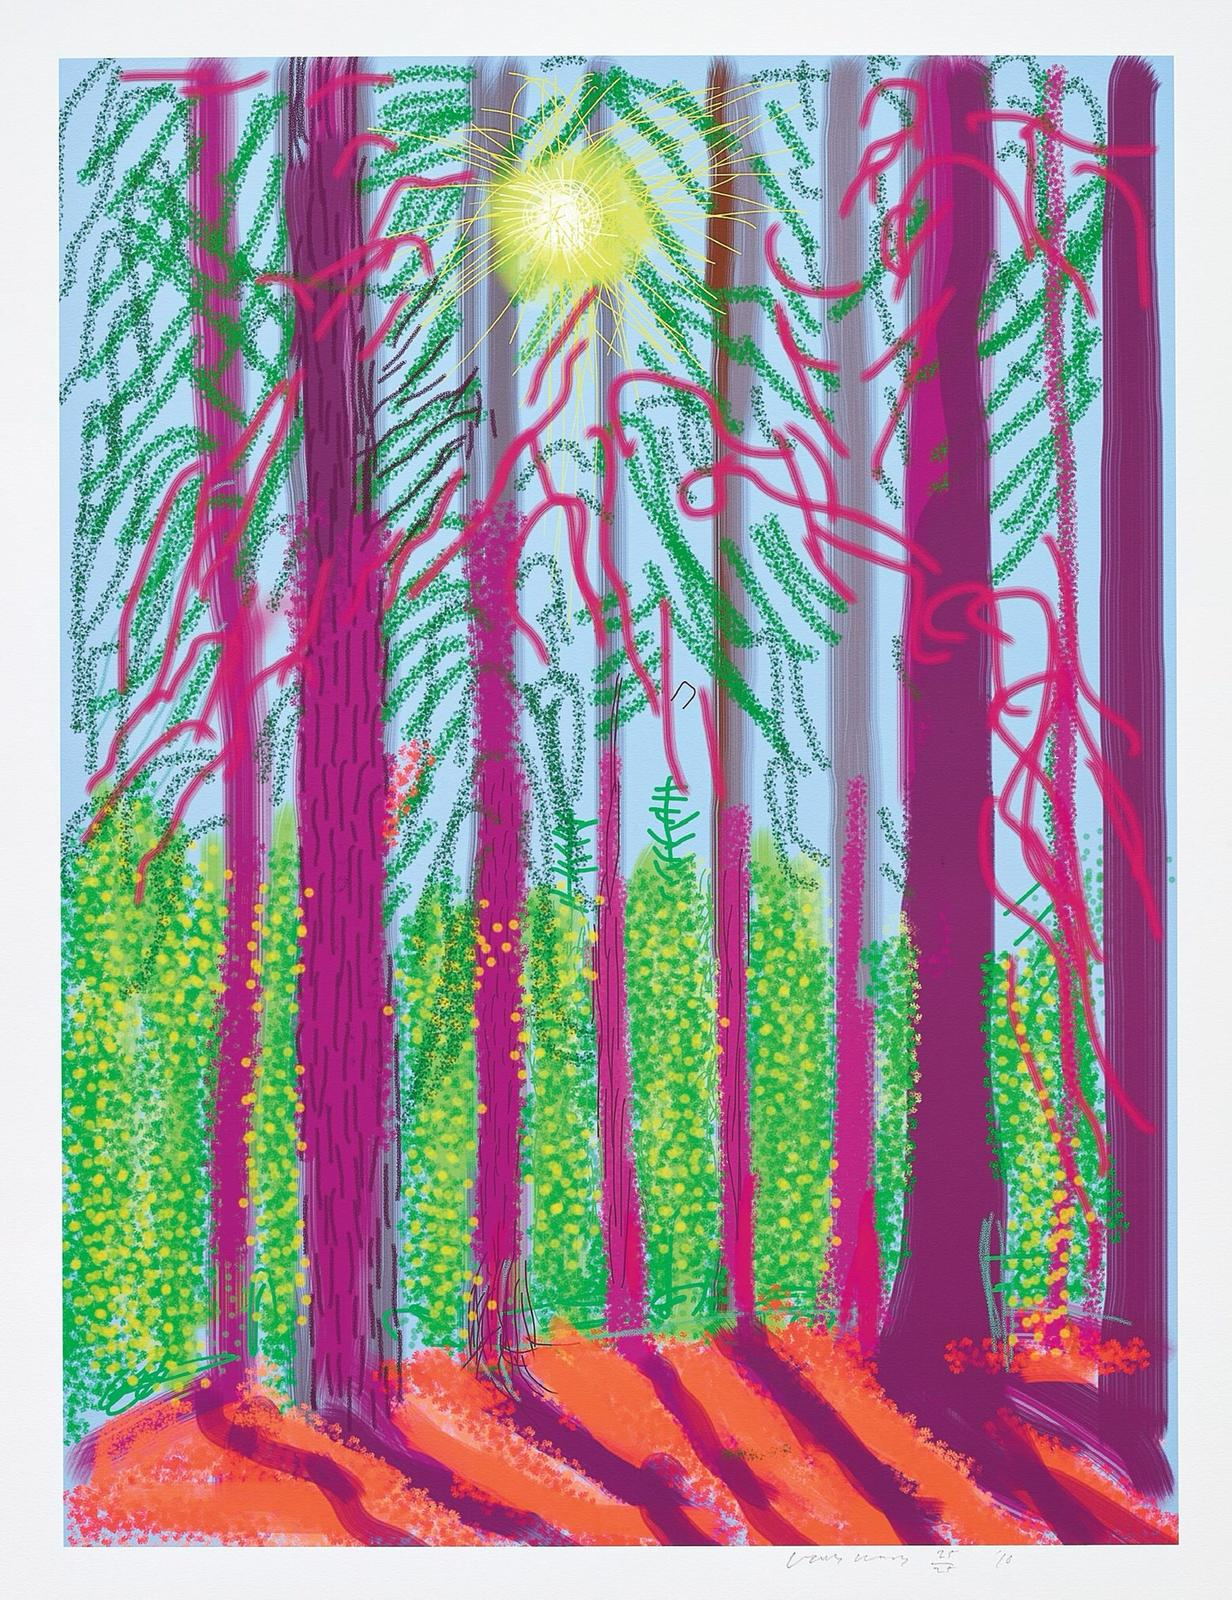 Untitled No. 4 Yosemite Suite by David Hockney